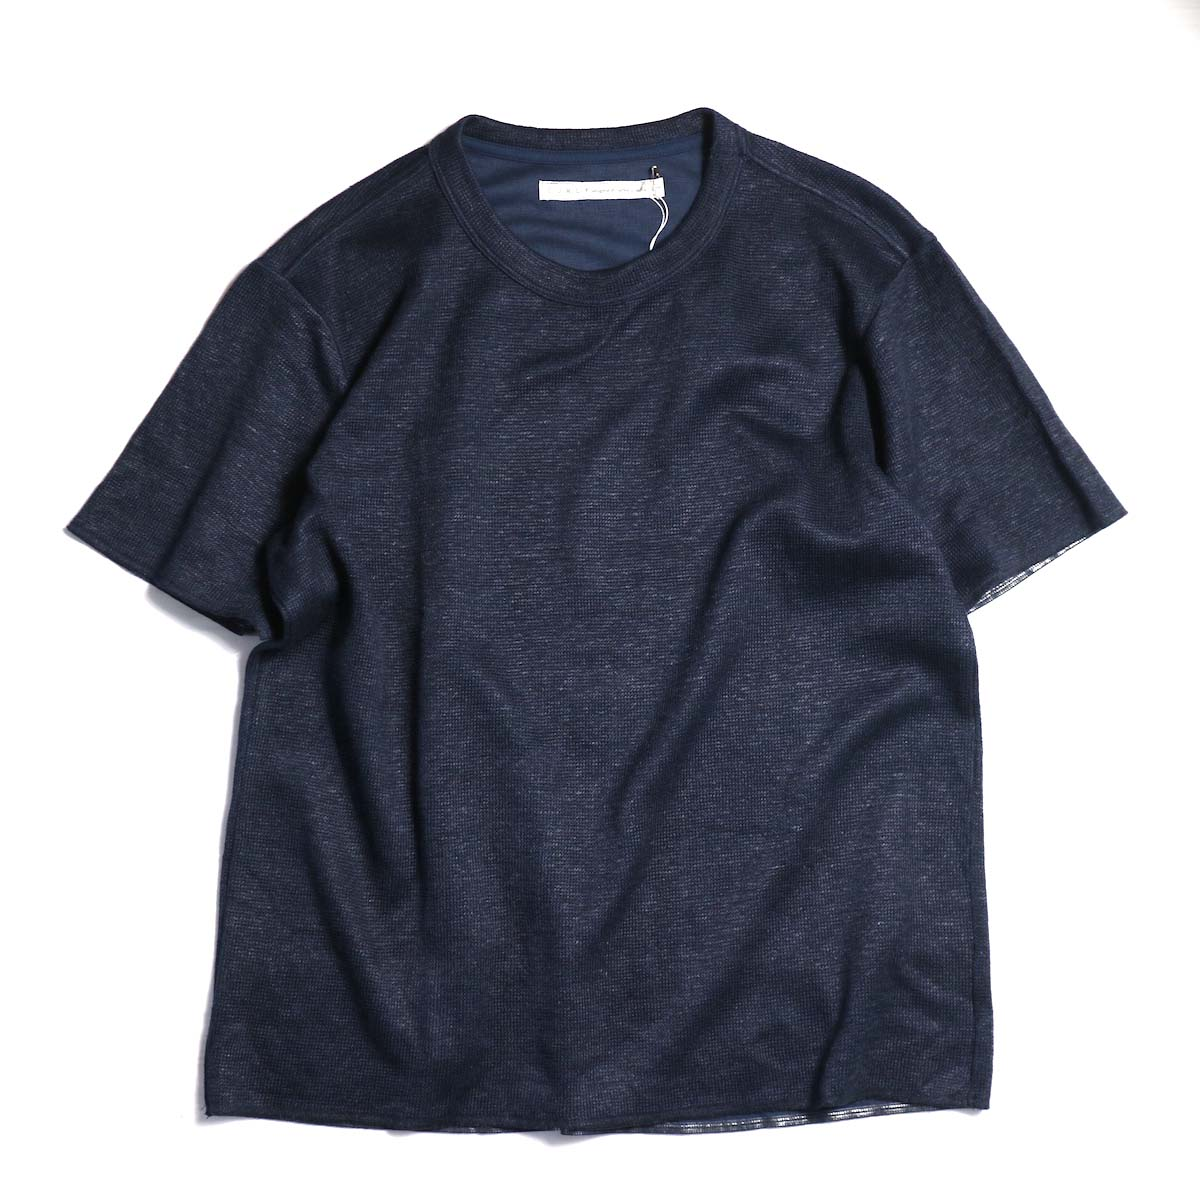 CURLY / ACCURATE HS TEE -Navy